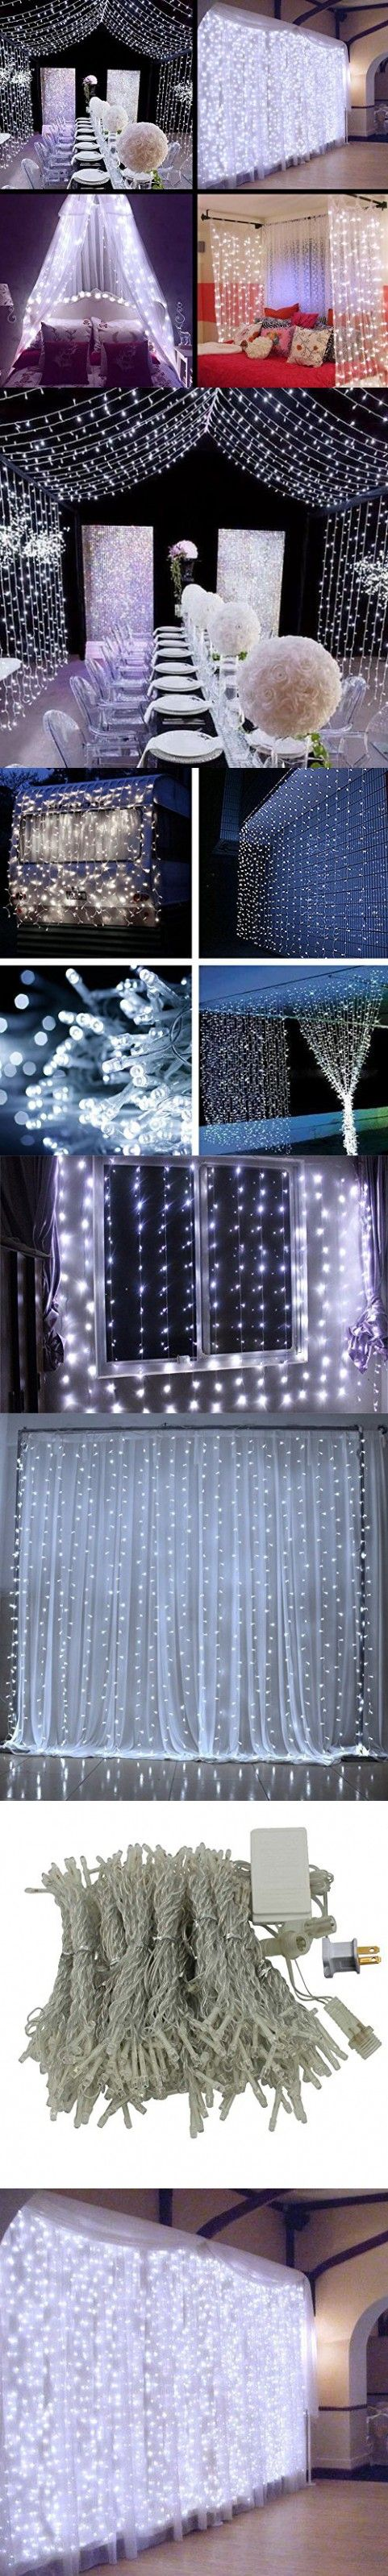 DLPIN 304LED UL Safe Fuse 8 Mode Saving Settings Window Curtain String Lights for Christmas Wedding Party Decoration 9.8FT - White